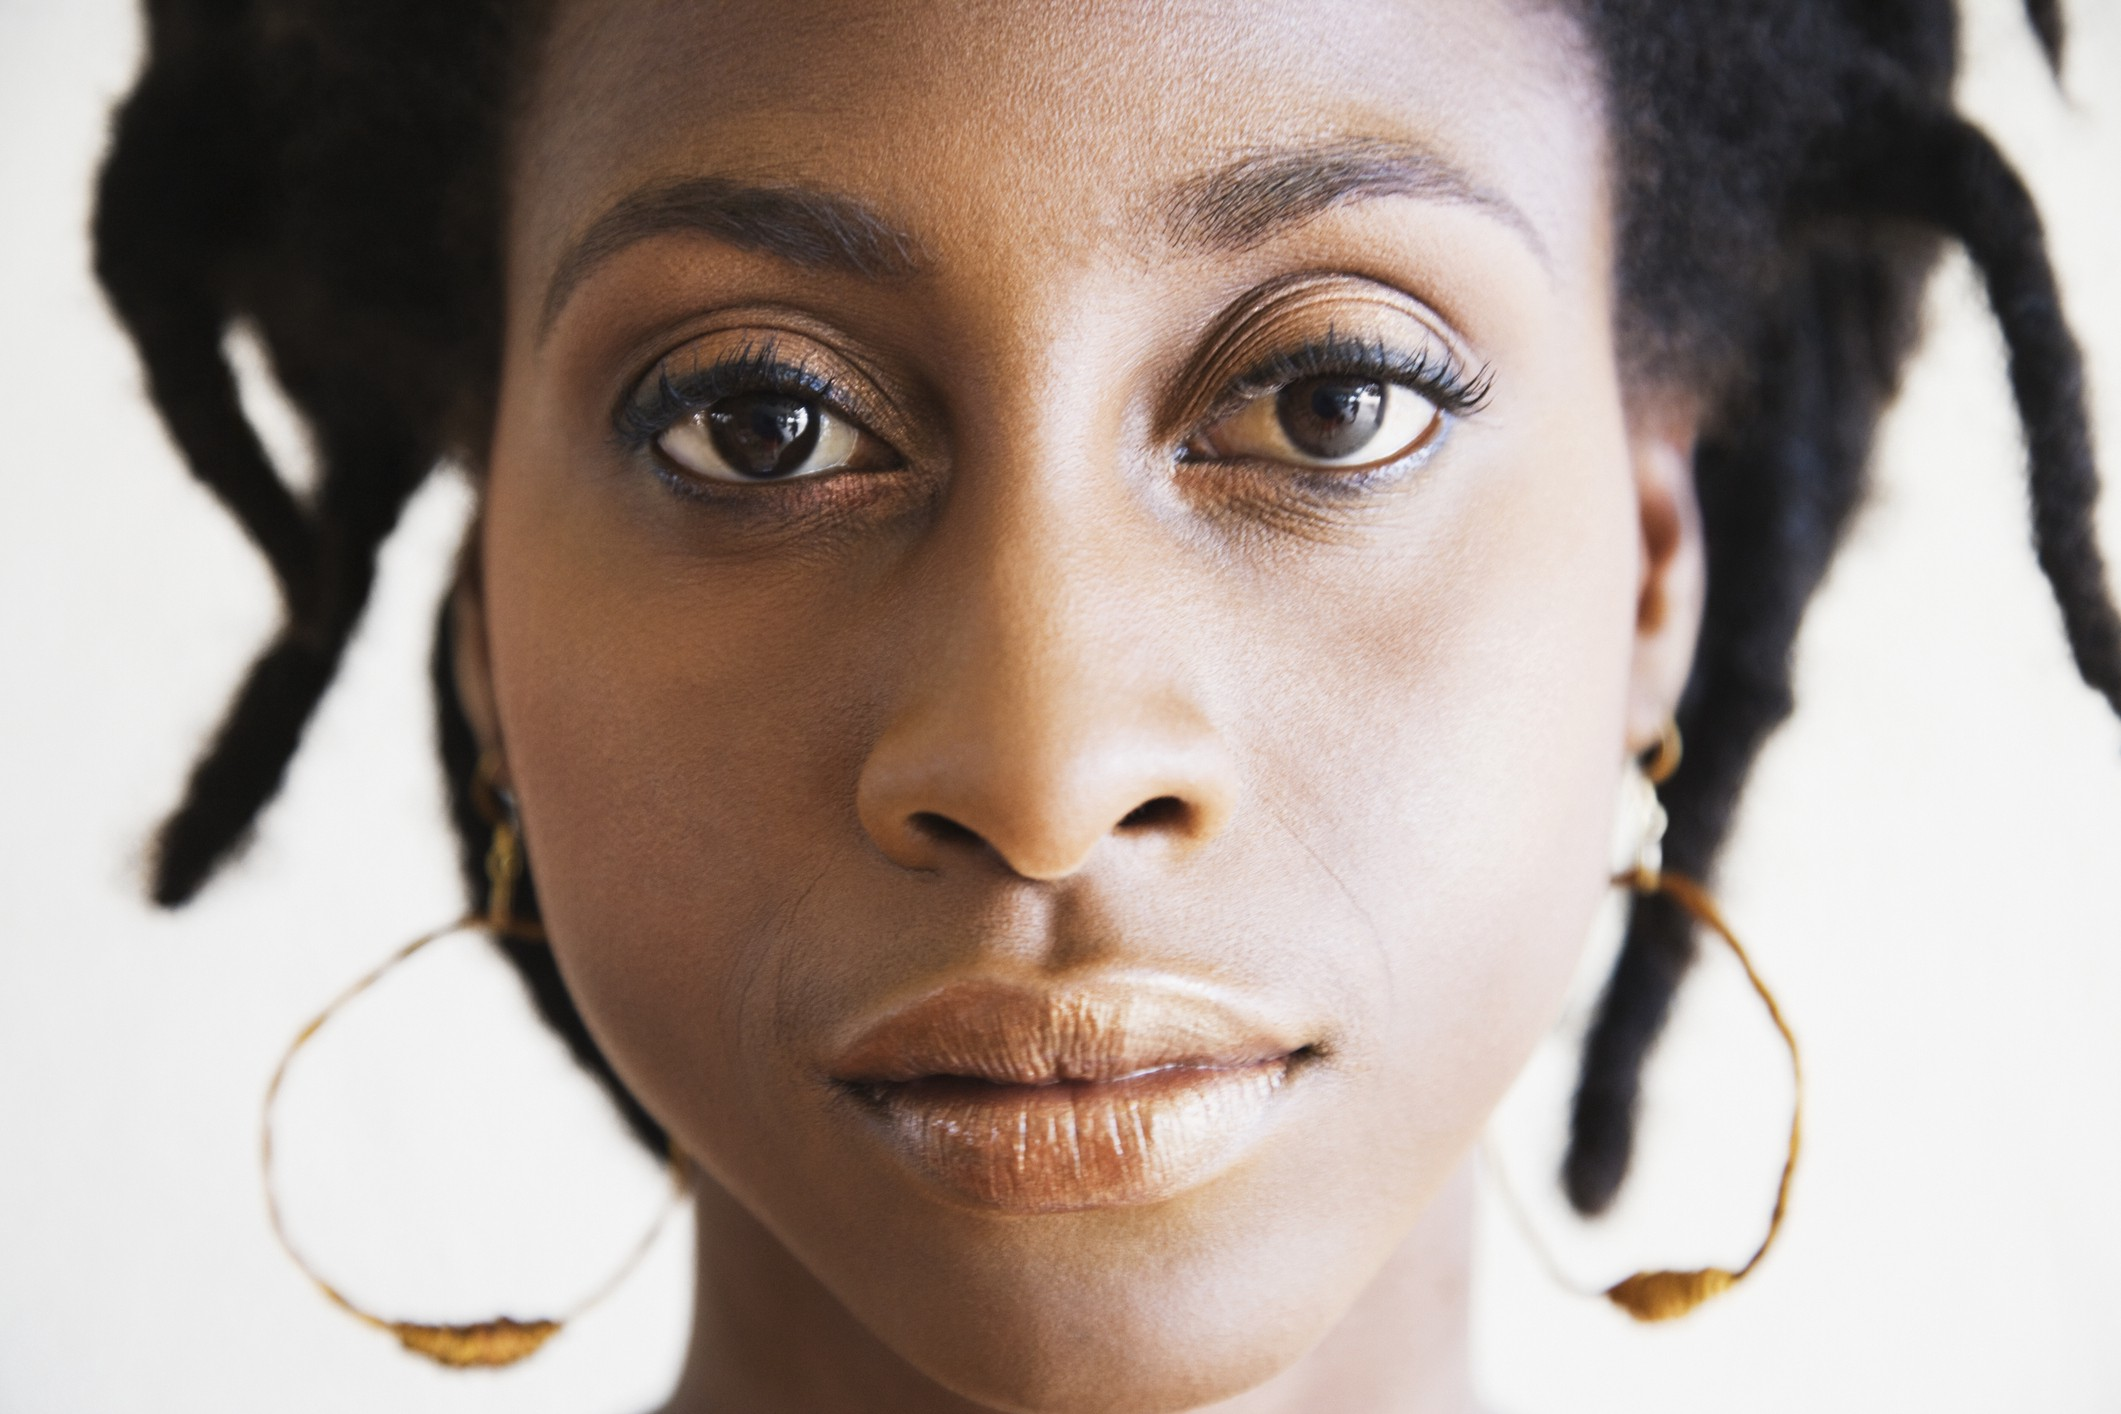 Closeup photo of a Black woman's face.